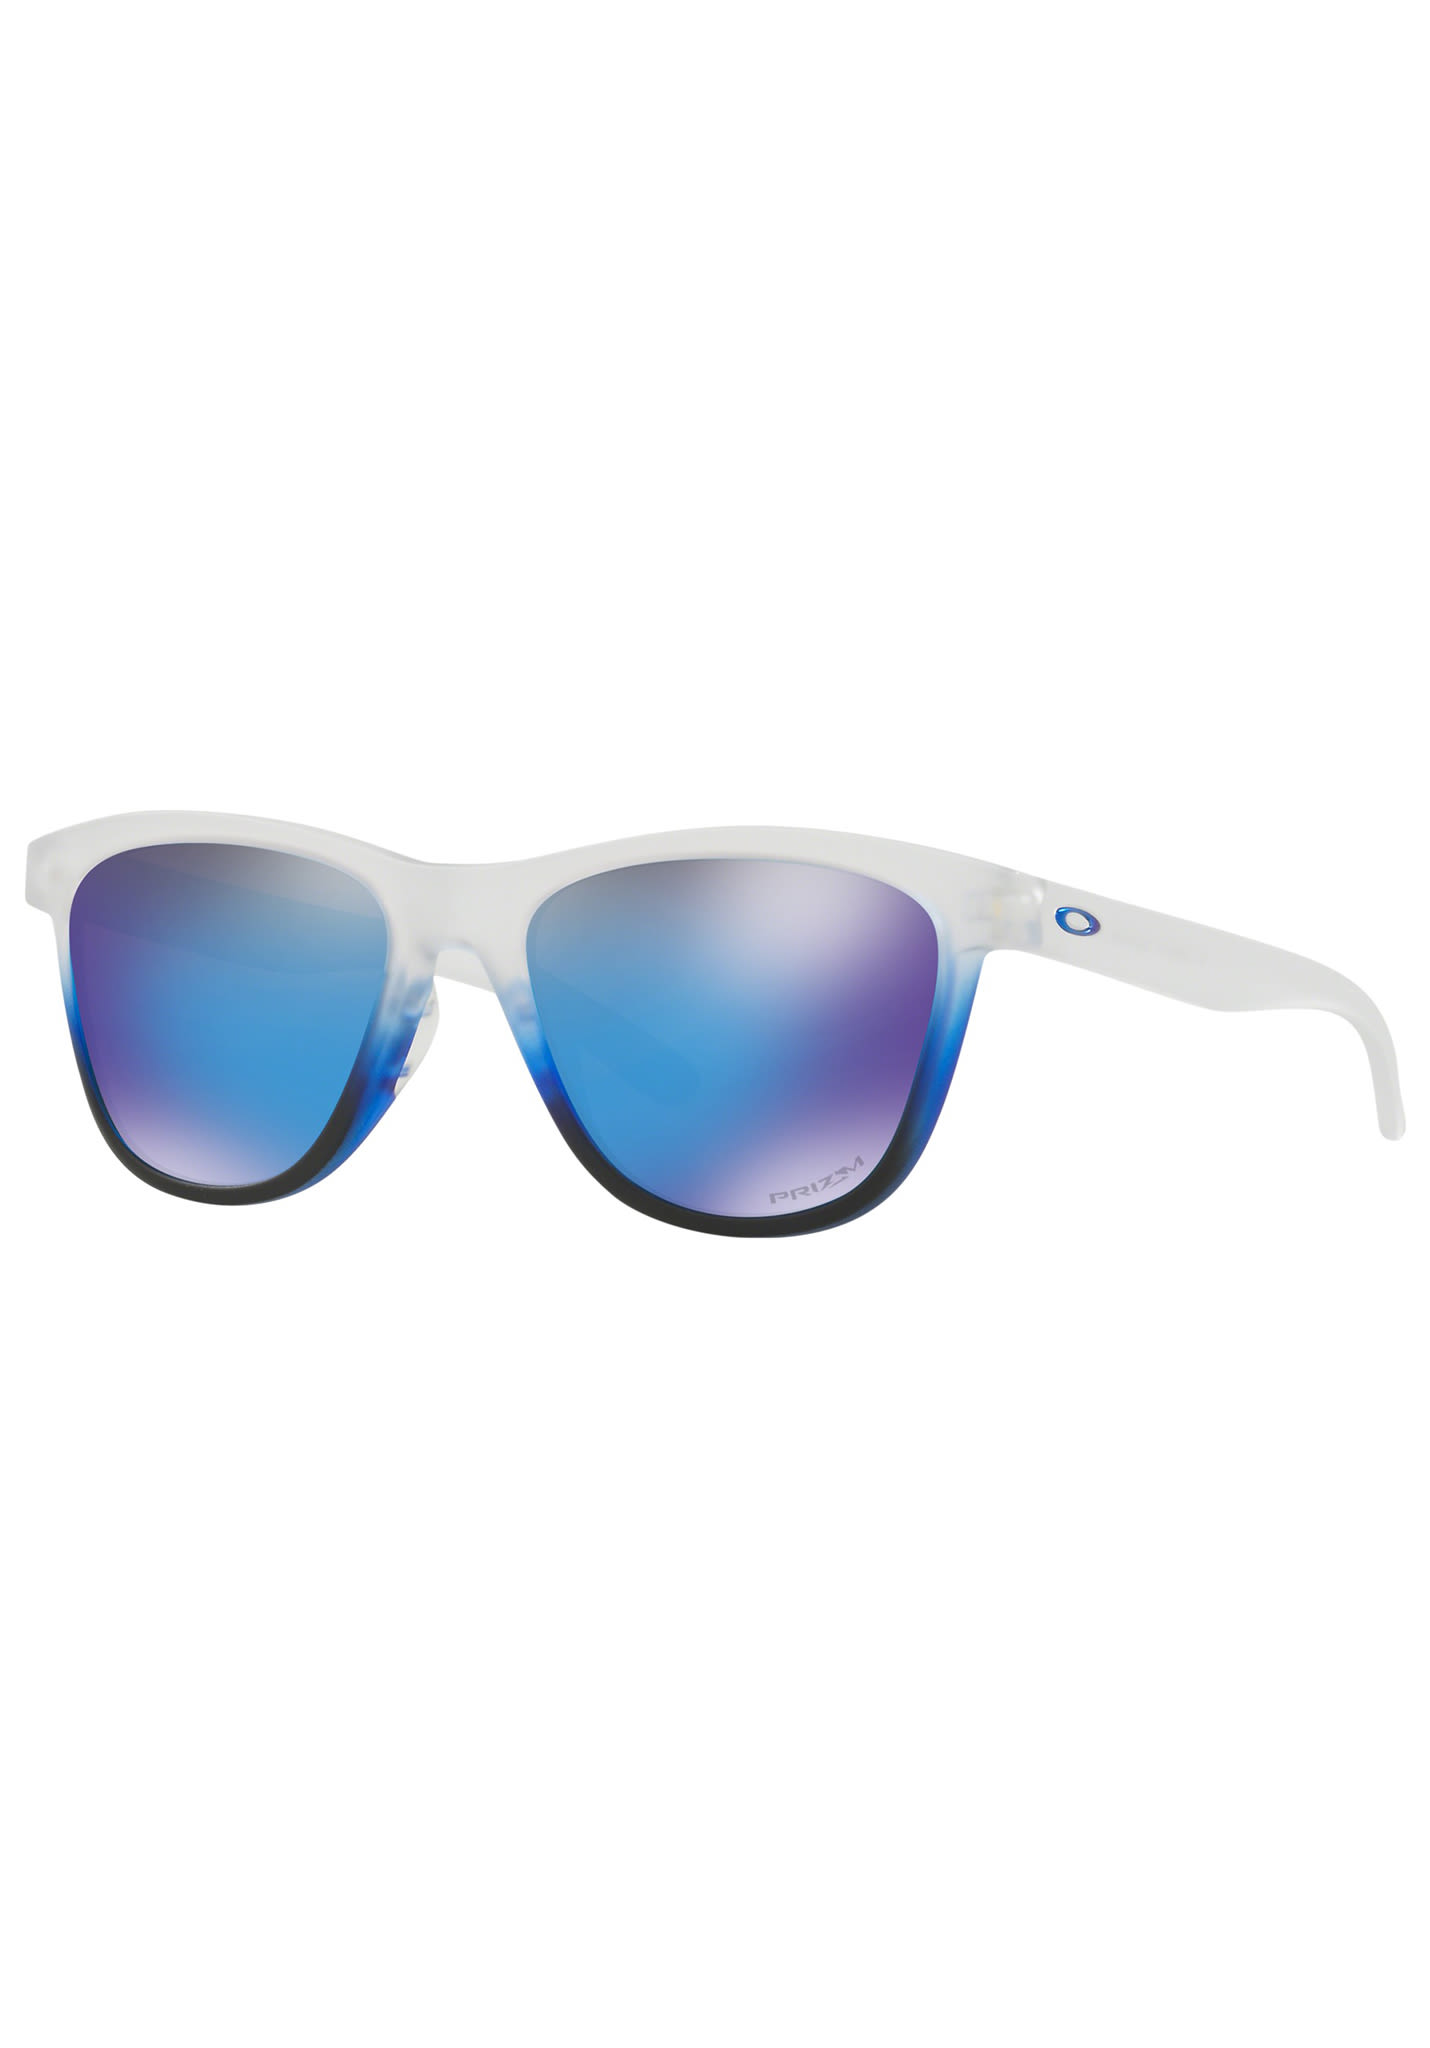 c45e6111b2 OAKLEY Moonlighter The Mist - Sonnenbrille - Mehrfarbig - Planet Sports